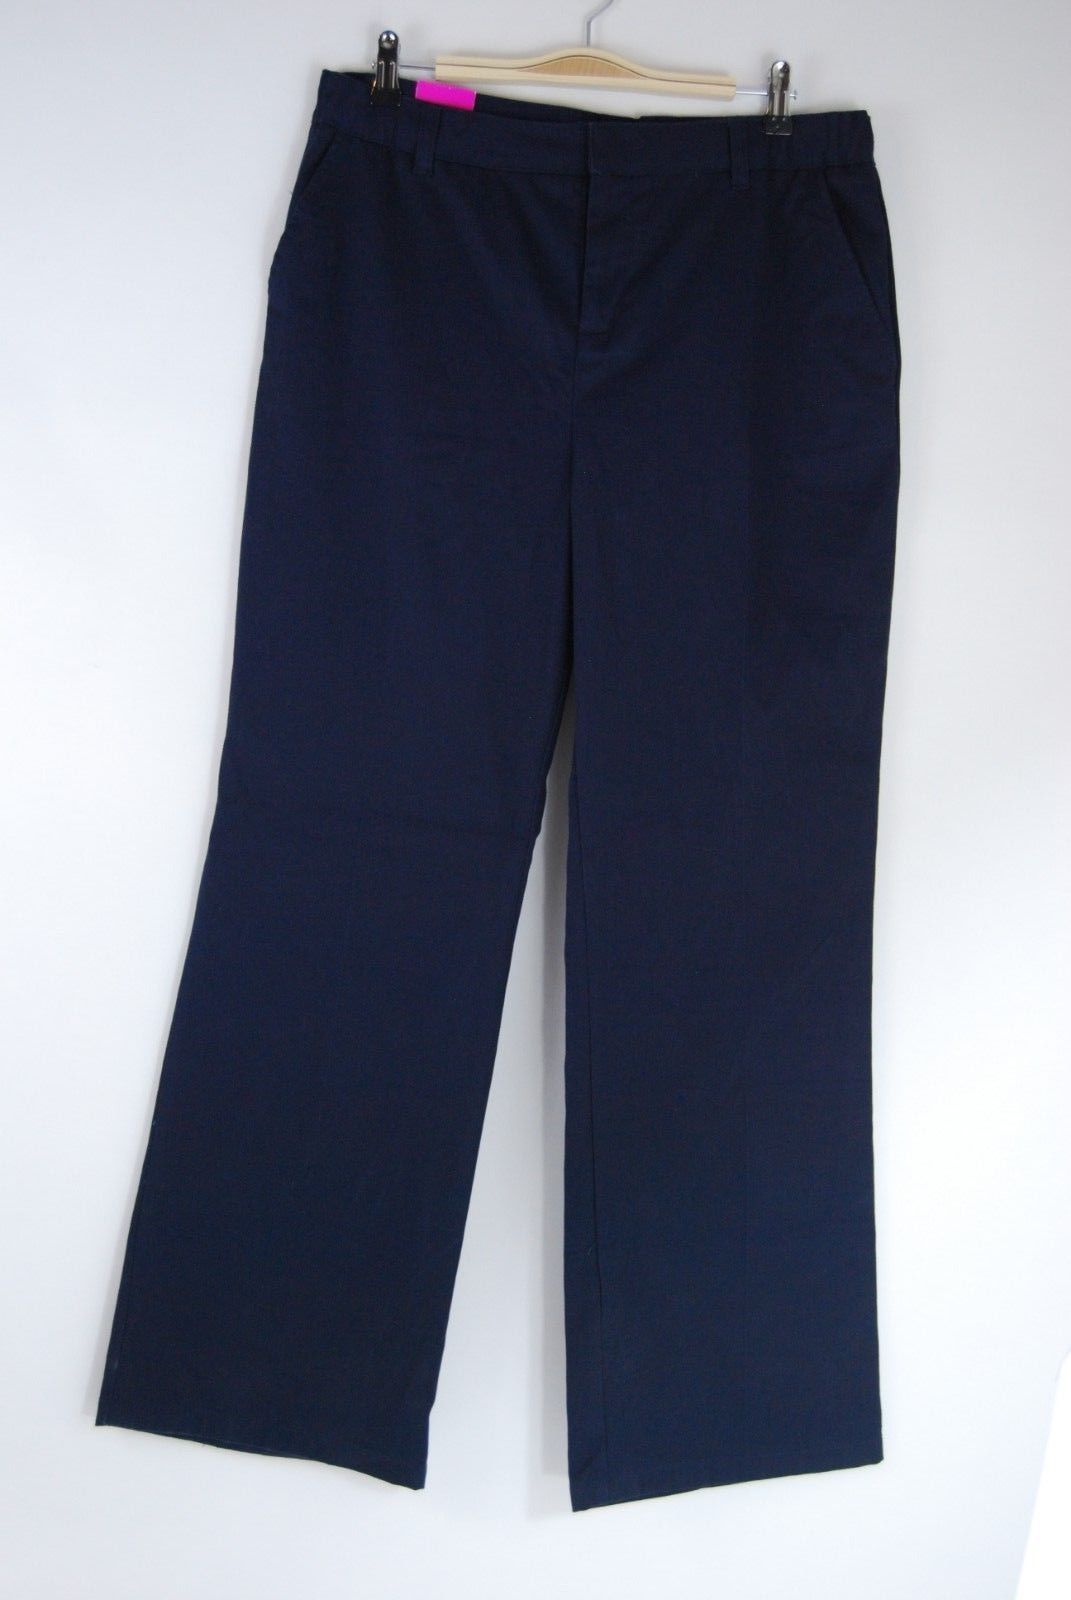 French Toast Navy Adjustable Uniform Pants - Size 18.5 Plus - NWT